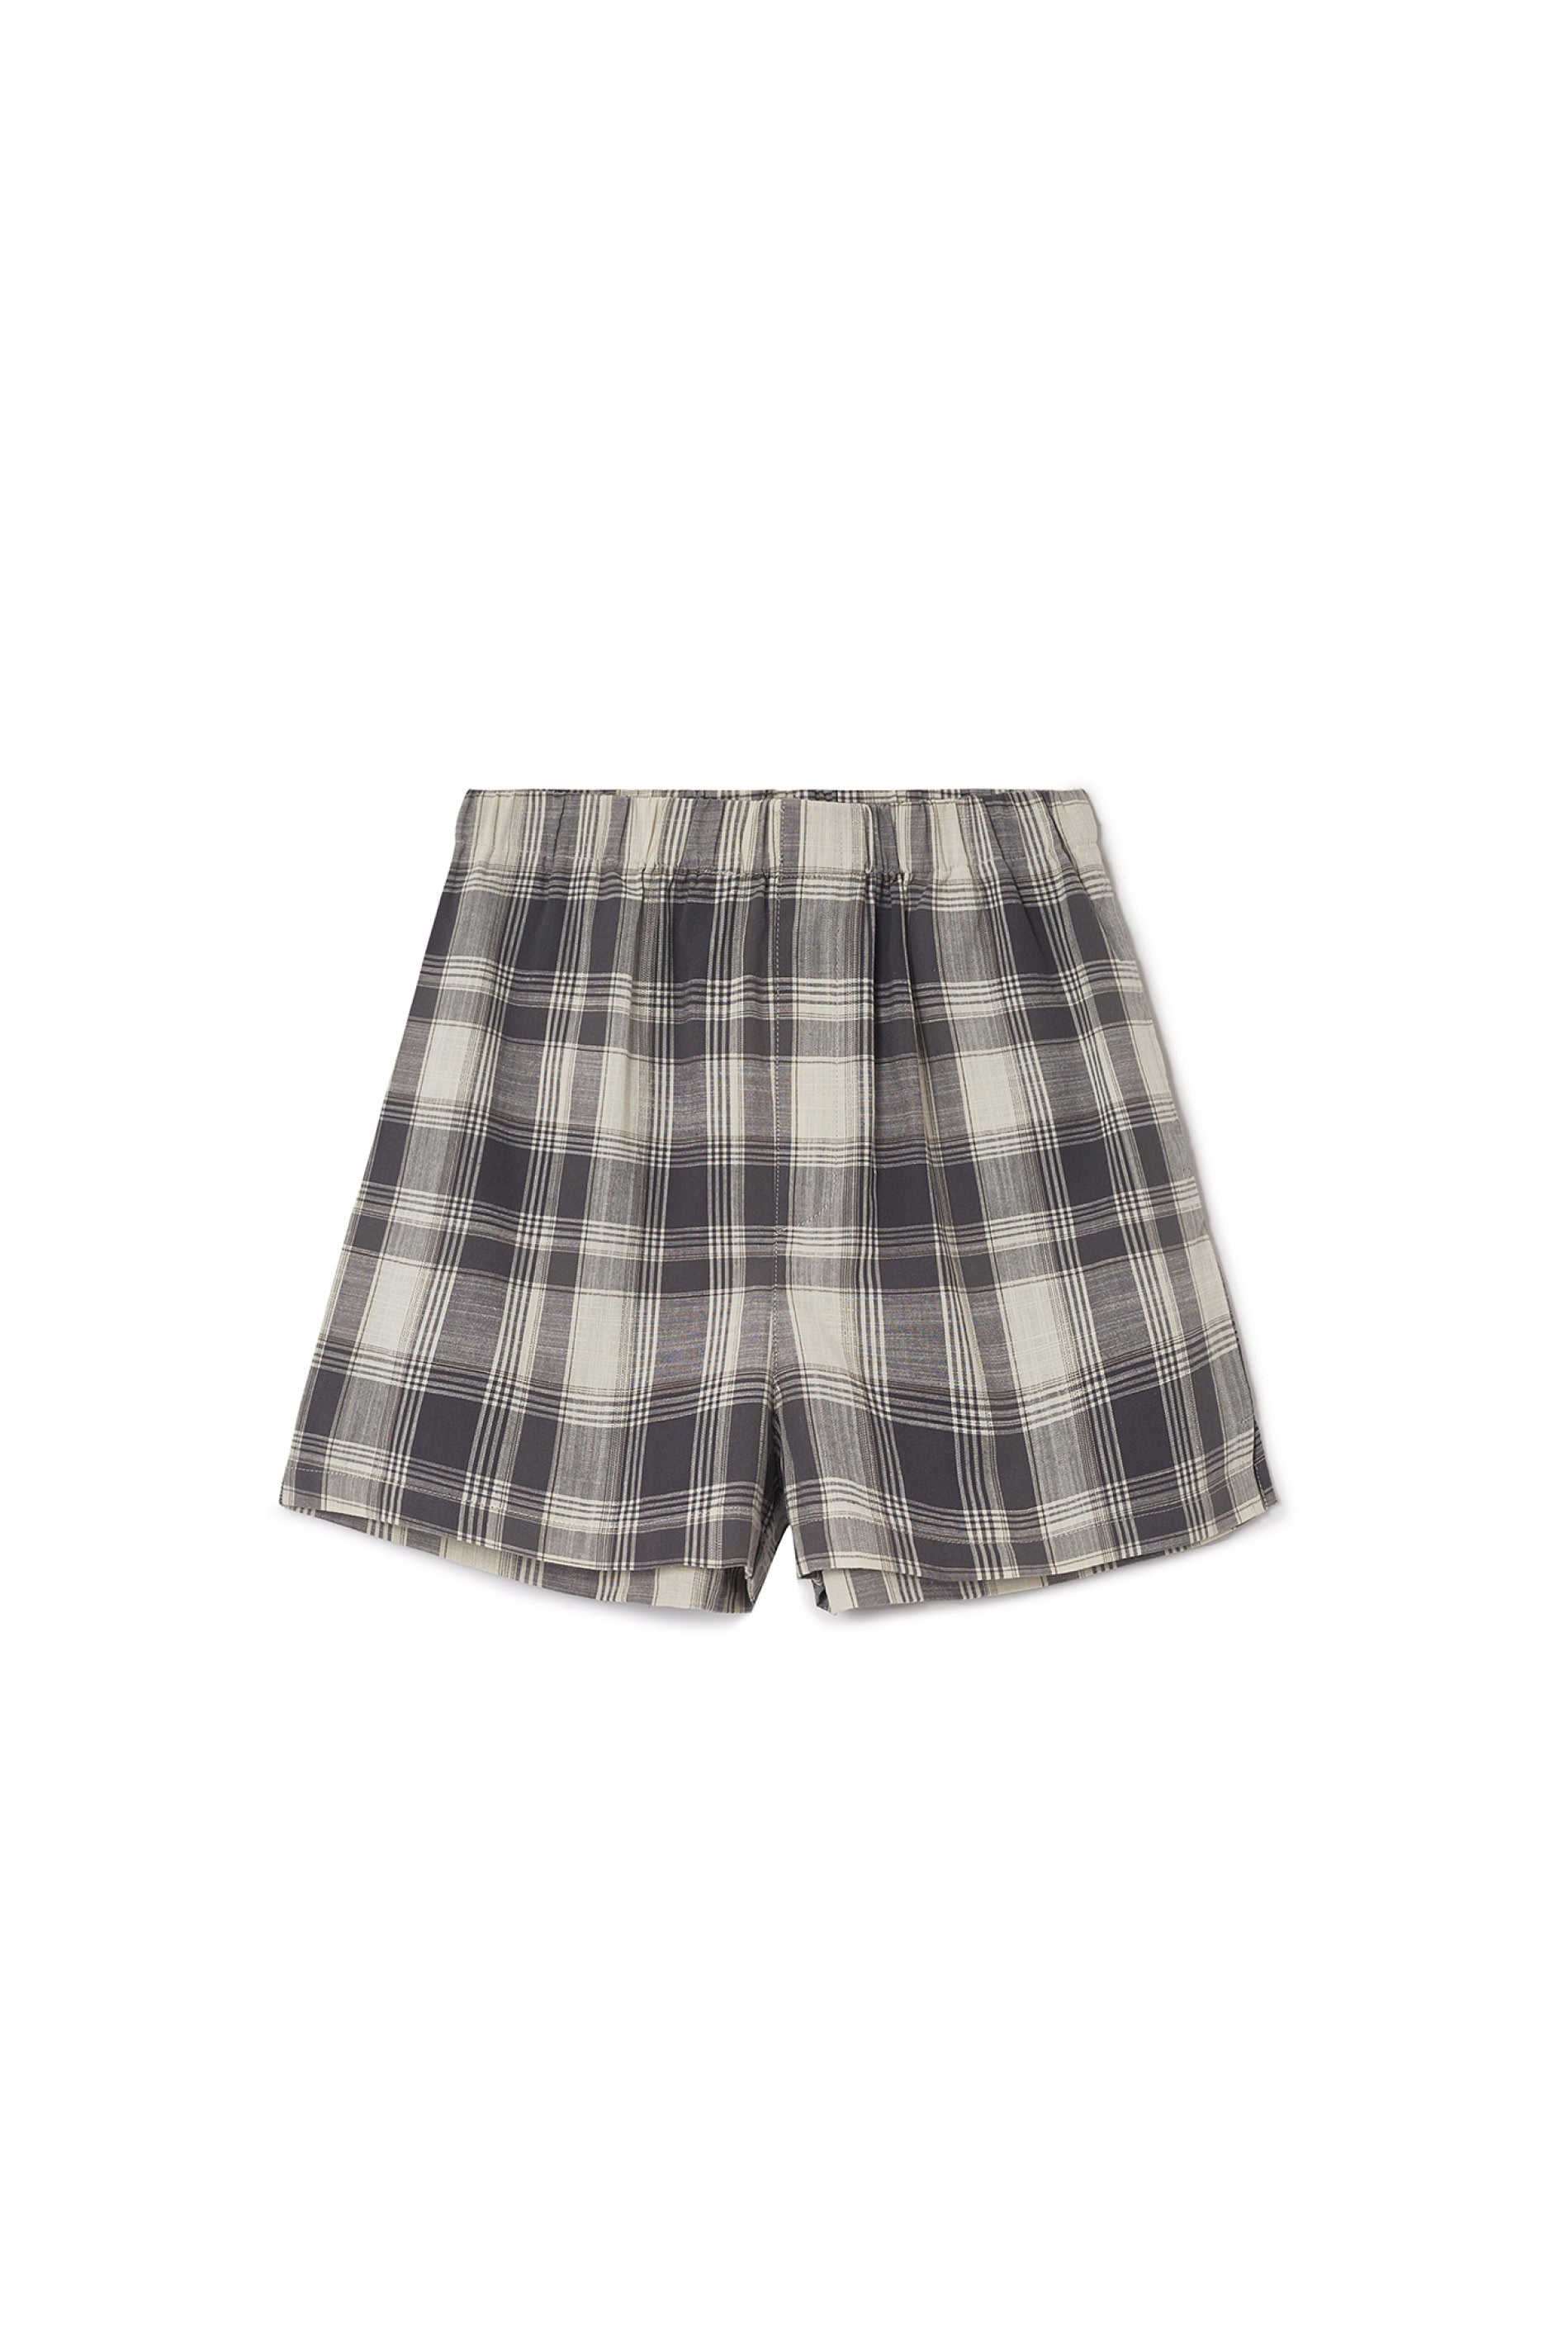 HW - M Sleep Shorts